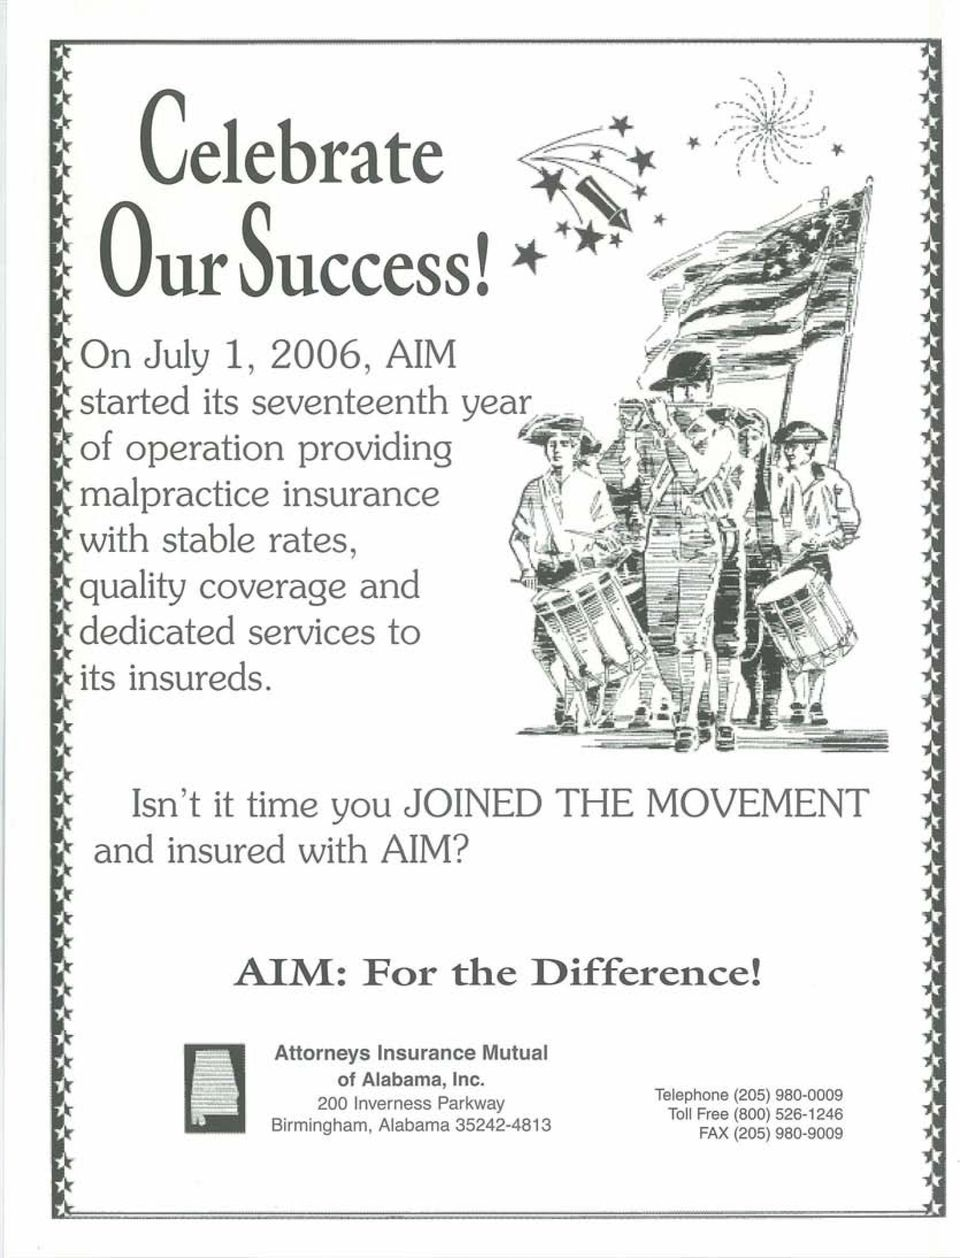 Isn't it time you JOINED THE MOVEMENT and insured with AIM? AIM: For the Difference!